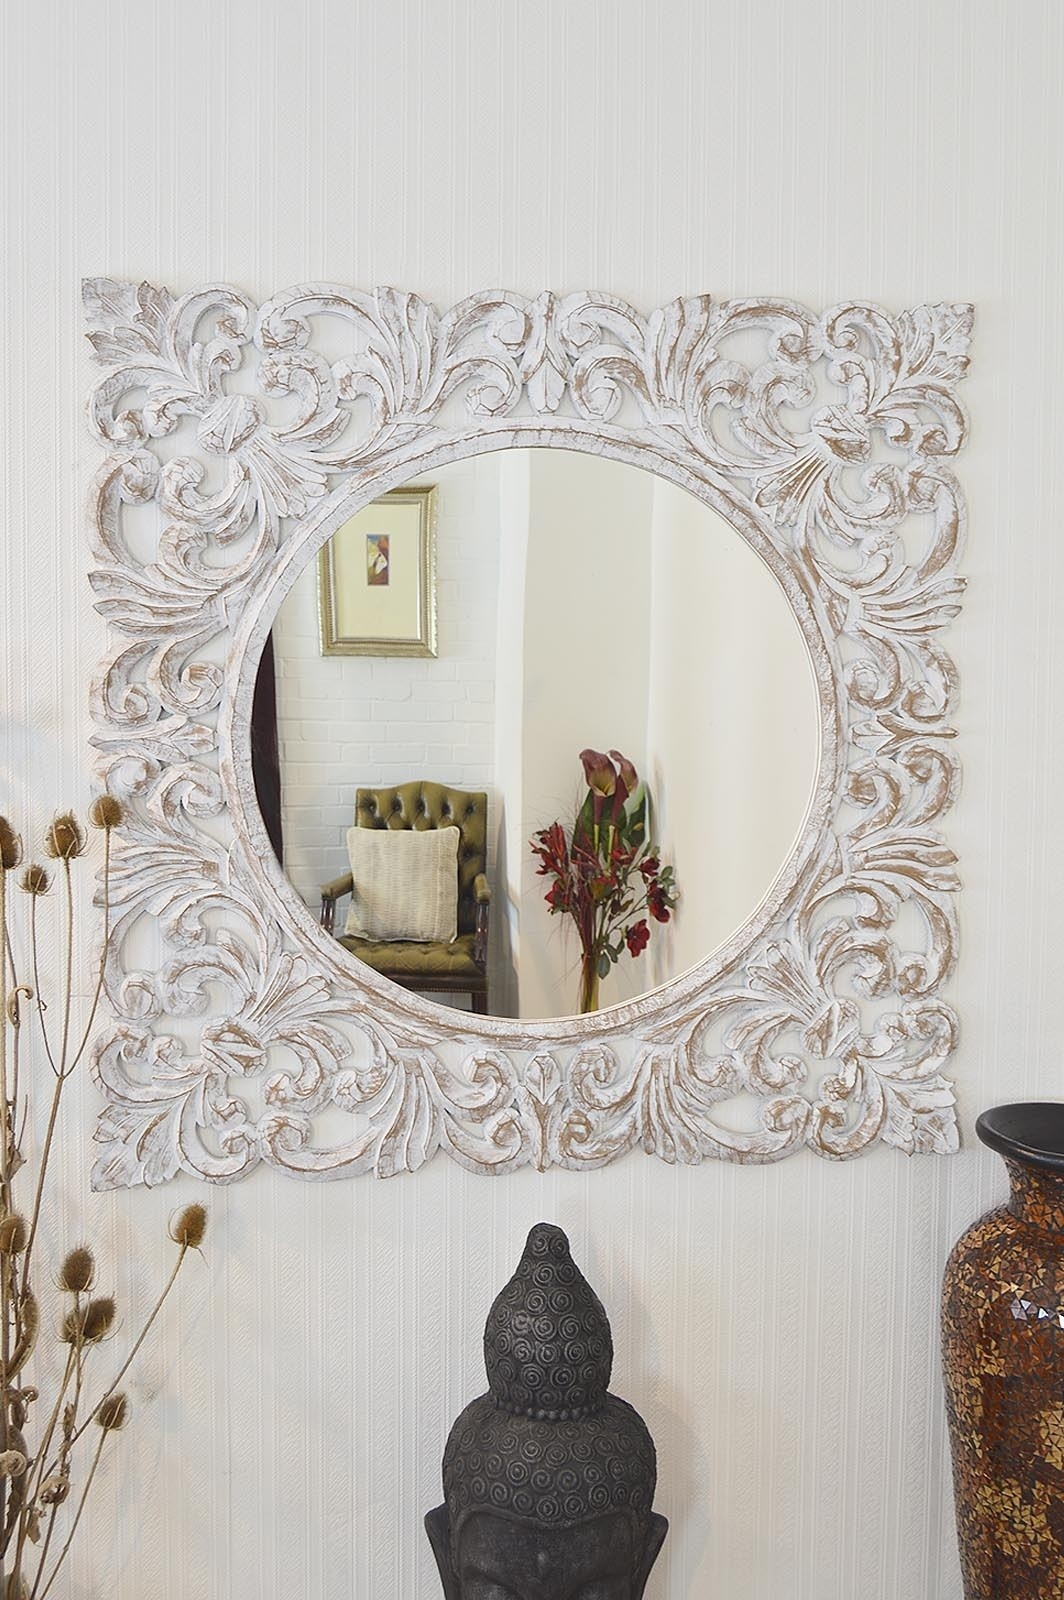 8 Beautiful Large Ornate Mirrors Lotusep For Large White Antique Mirror (Image 2 of 15)